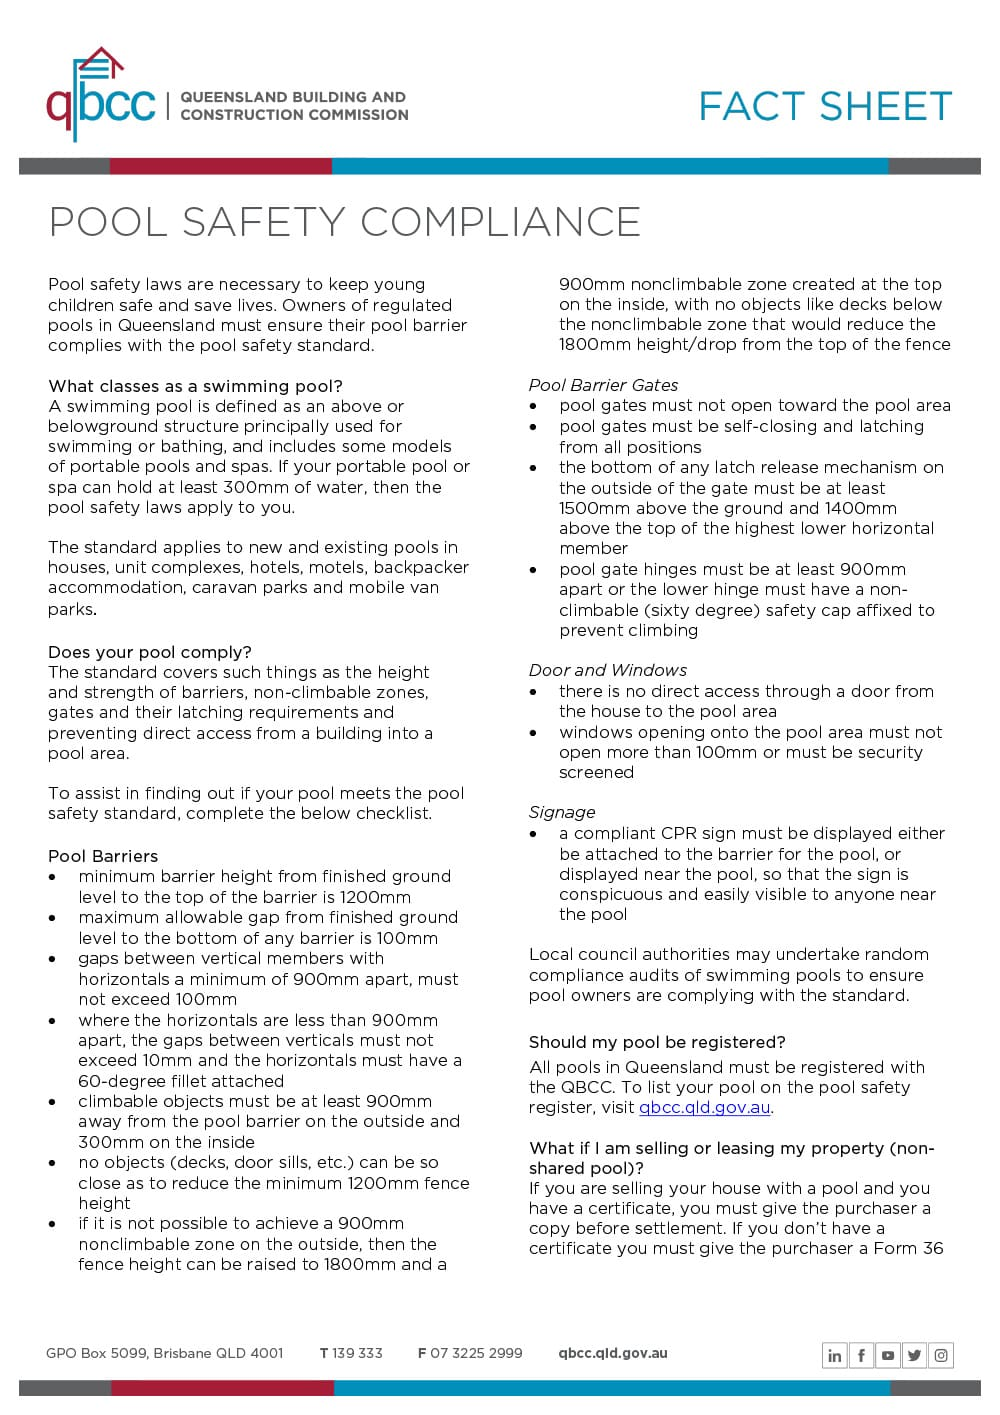 Pool_Safety_Compliance_FACT-SHEET-1